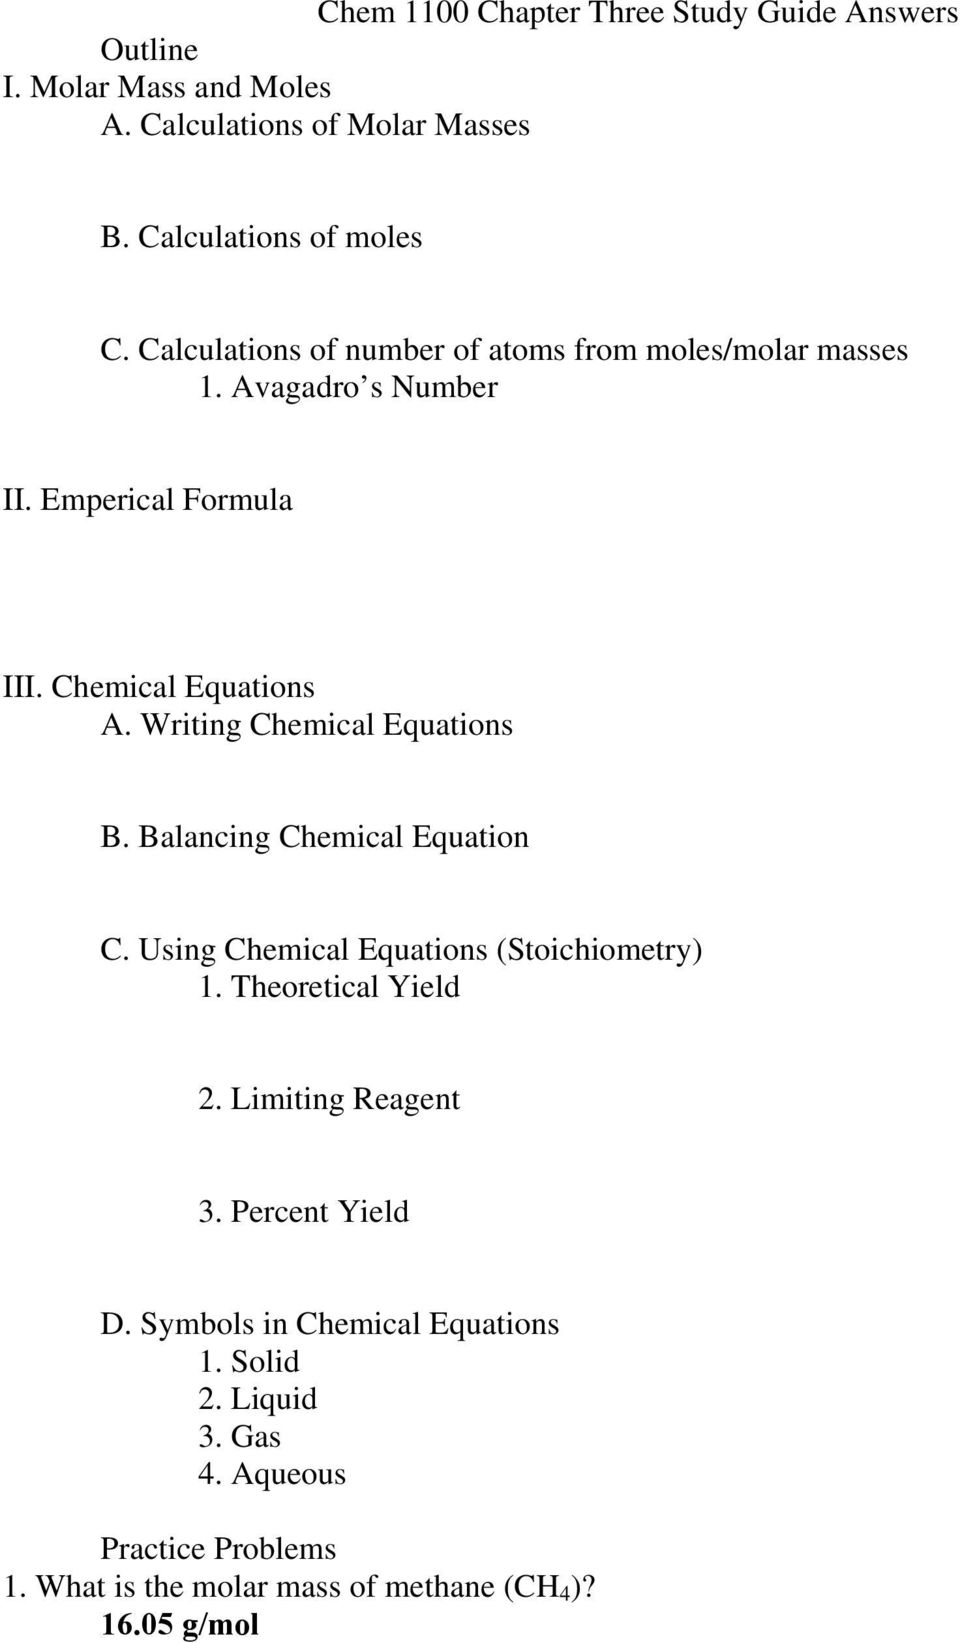 Writing Chemical Equations B. Balancing Chemical Equation C. Using Chemical Equations (Stoichiometry) 1. Theoretical Yield 2.